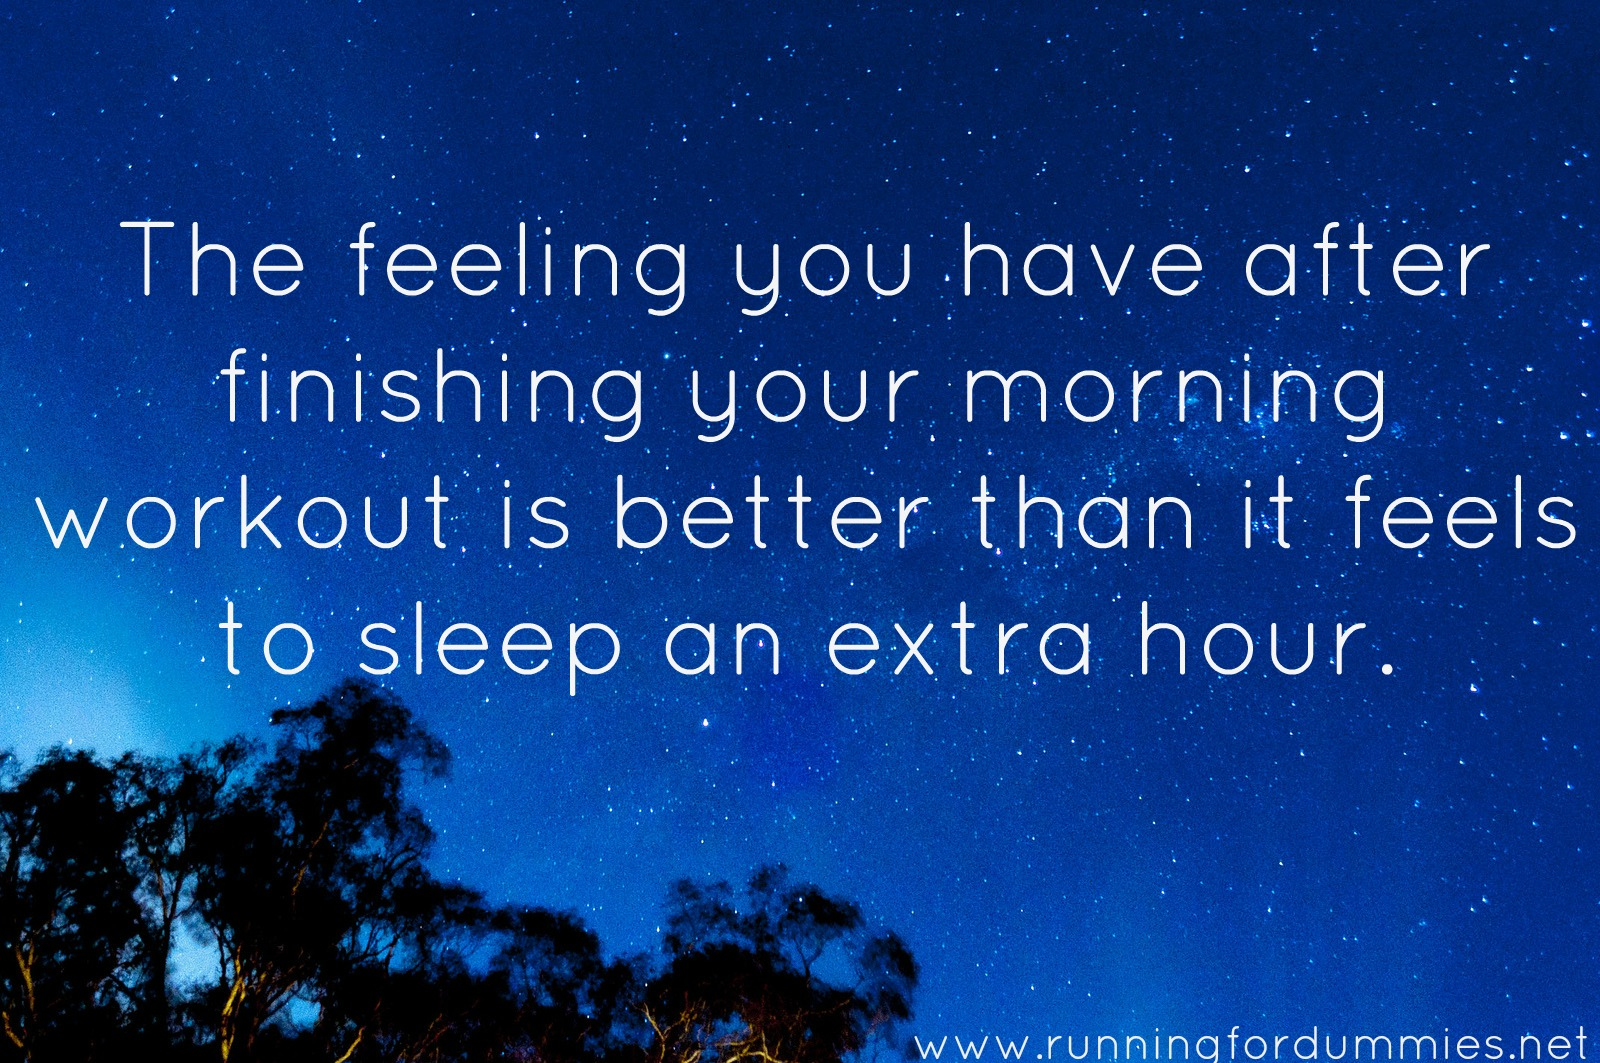 Morning Workout Quotes Running With Ollie A Dummies Guide To Waking Up Early To Work Out